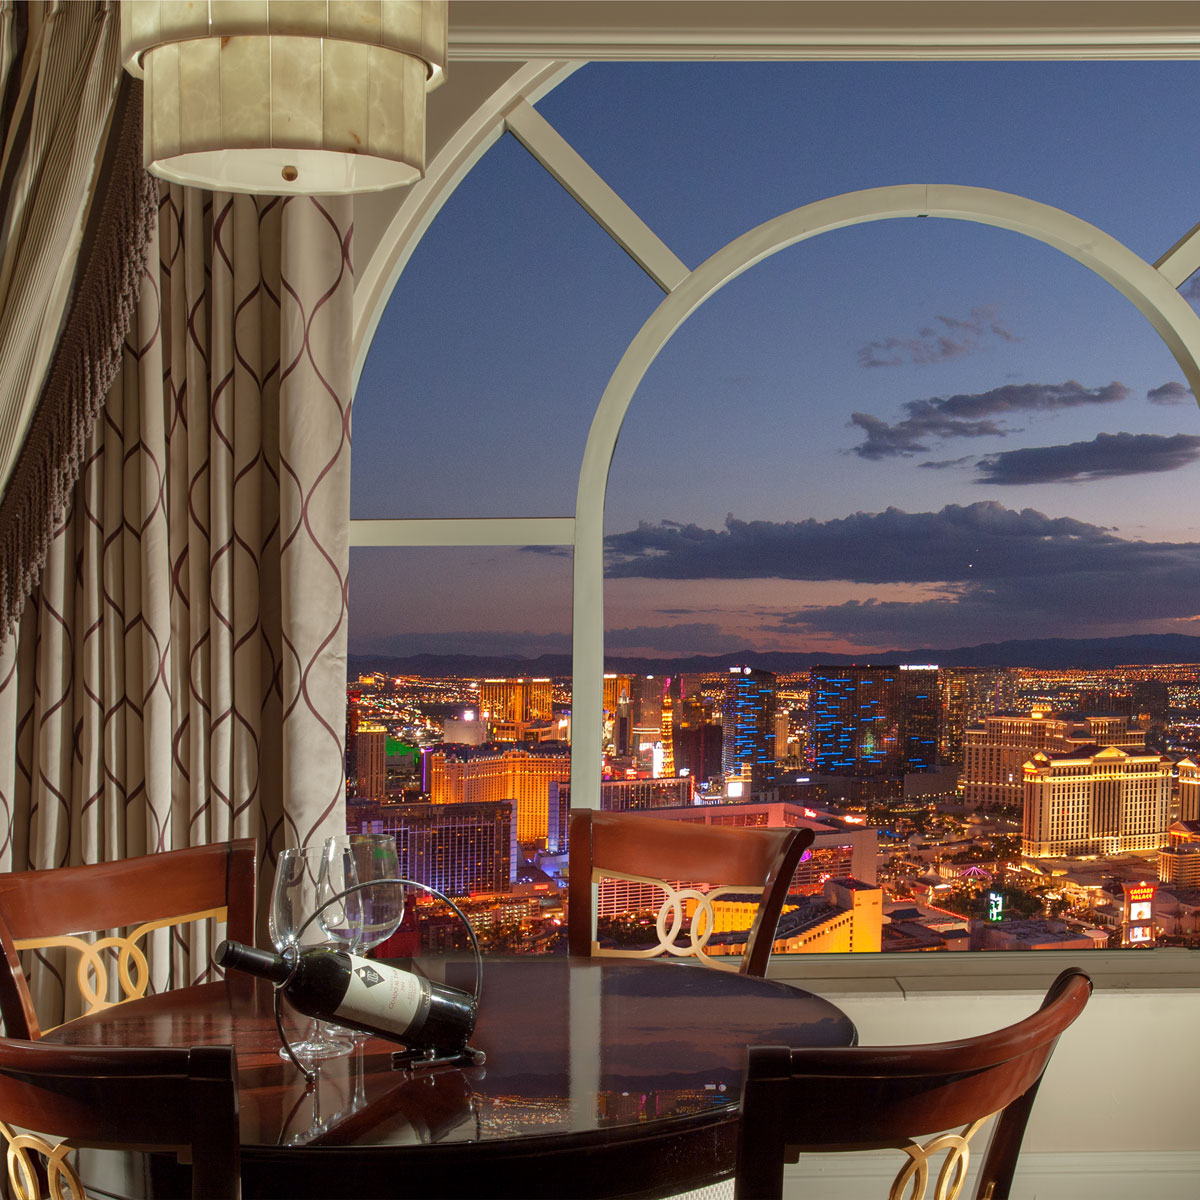 A view of Las Vegas from the Luxury Suite's dramatic window. Photo courtesy of The Venetian.